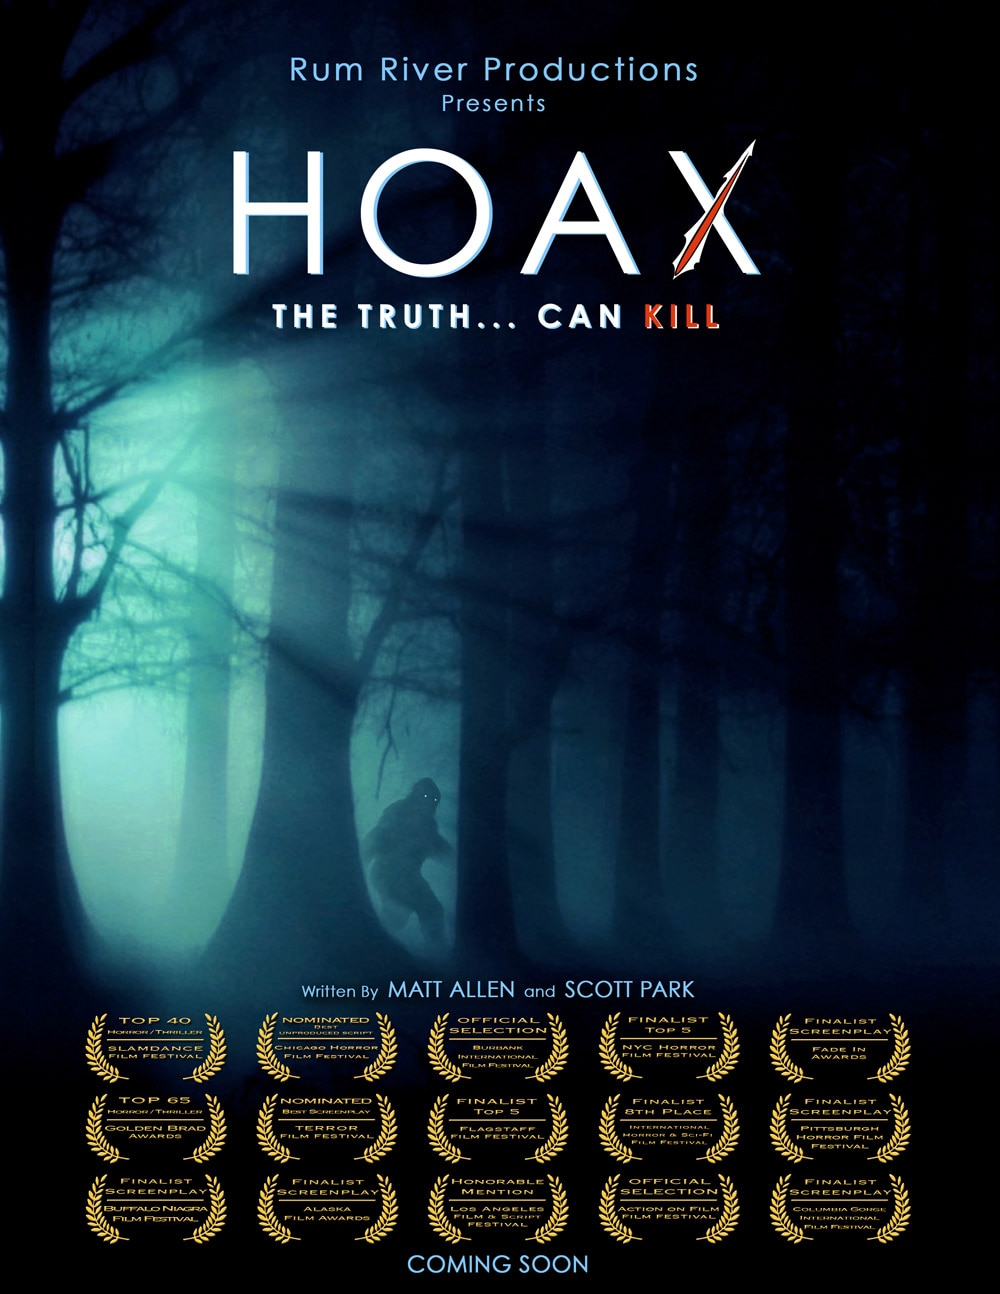 Hoax Poster - Exclusive Poster Premiere: This Hoax Can Kill!